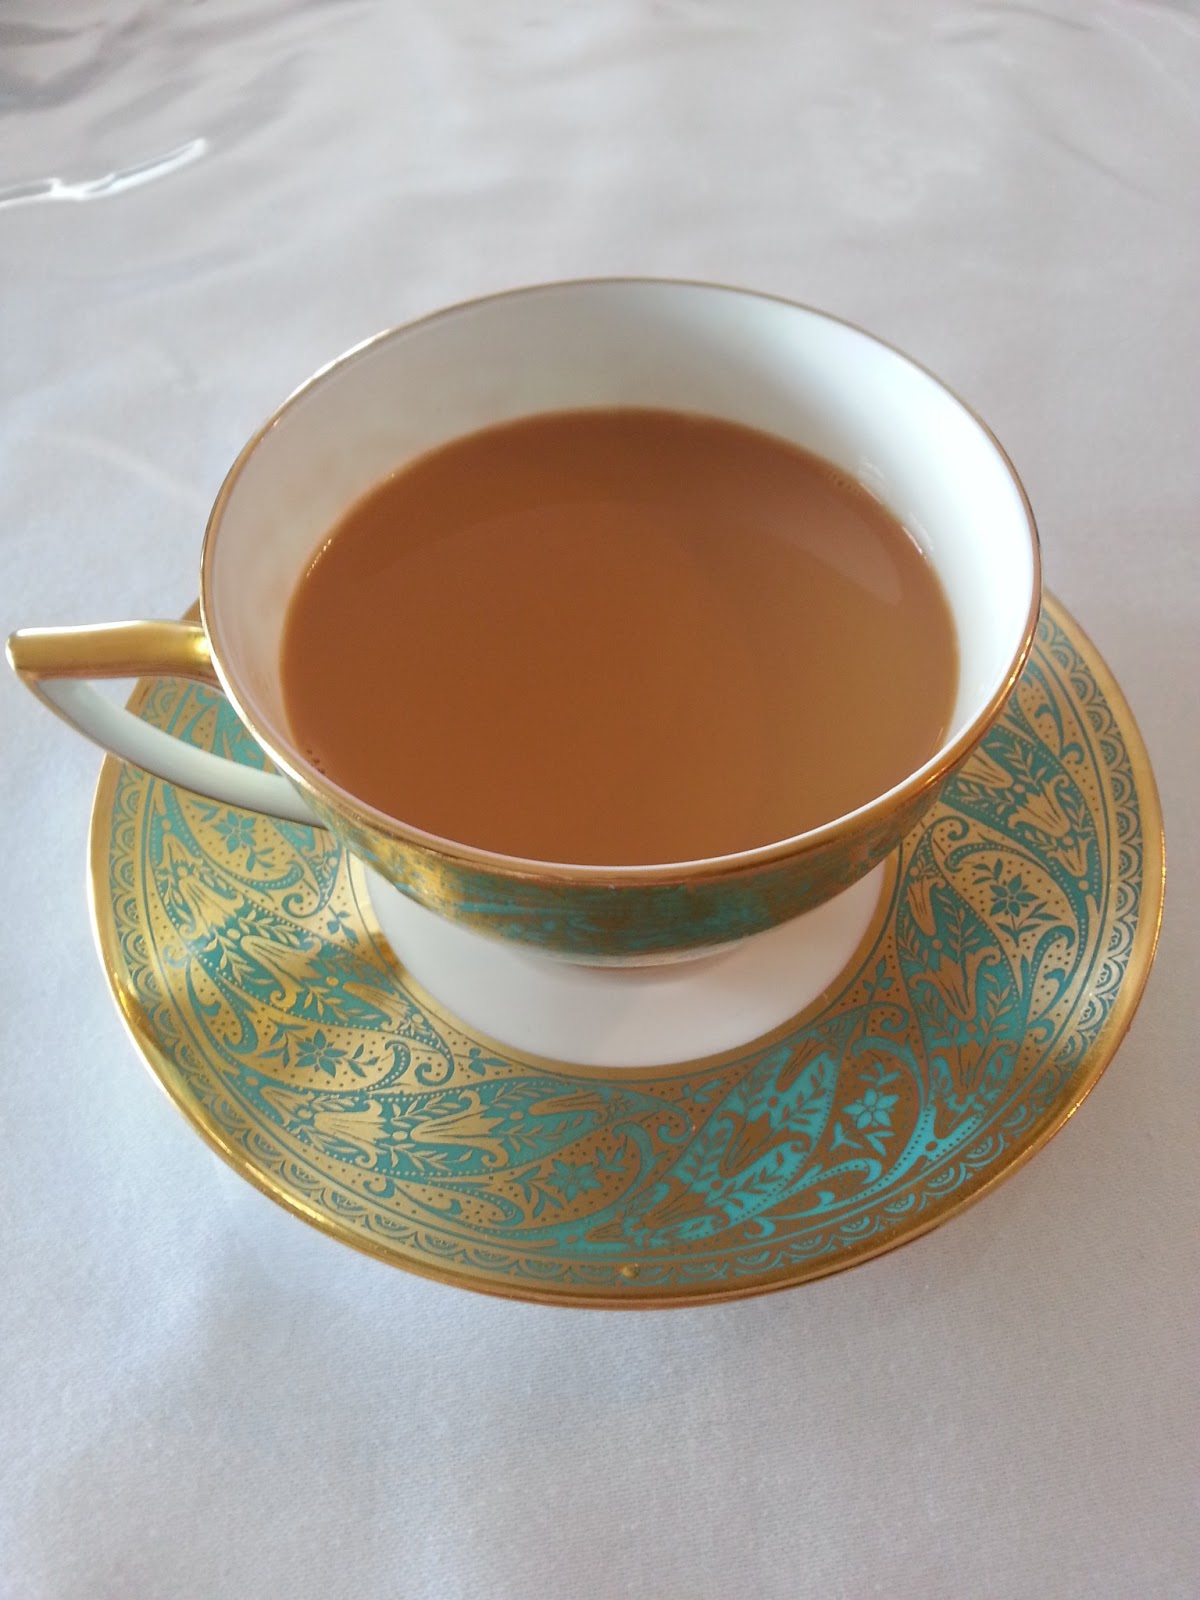 Why Drink Green Tea Instead Of Coffee